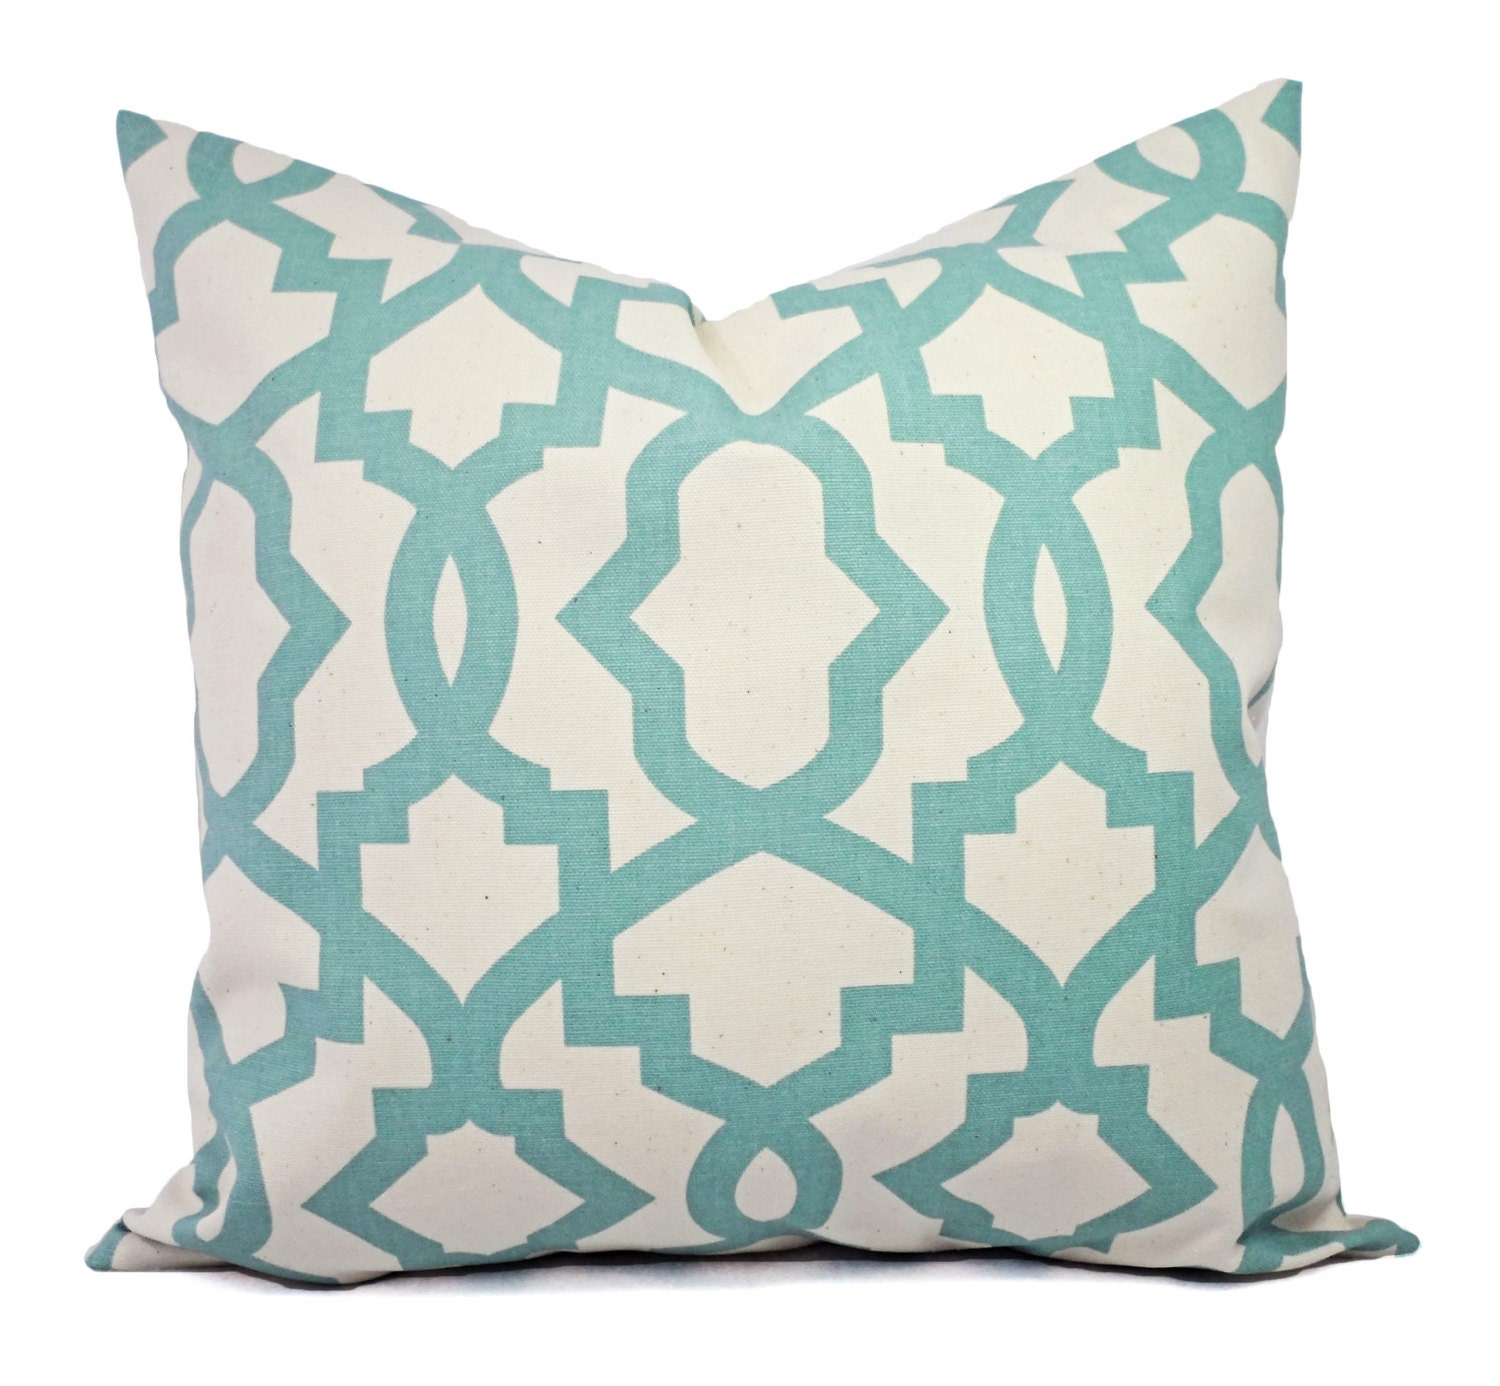 Two Pillow Covers Spa Blue Trellis Pillow Covers